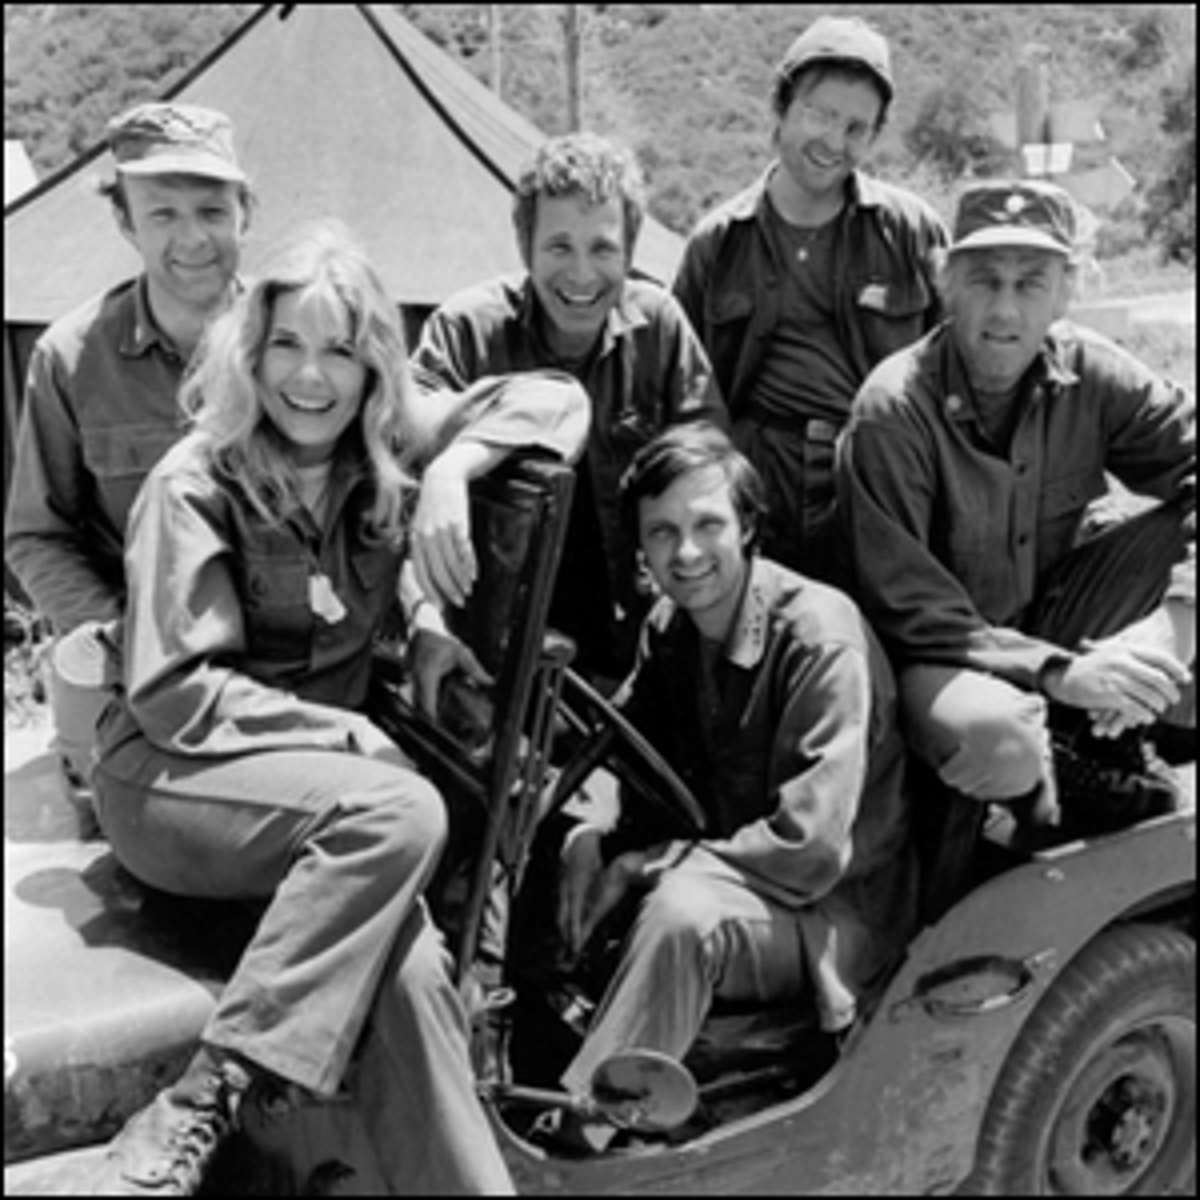 A publicity photo of the cast of M*A*S*H taken just prior to the production of Season 2.